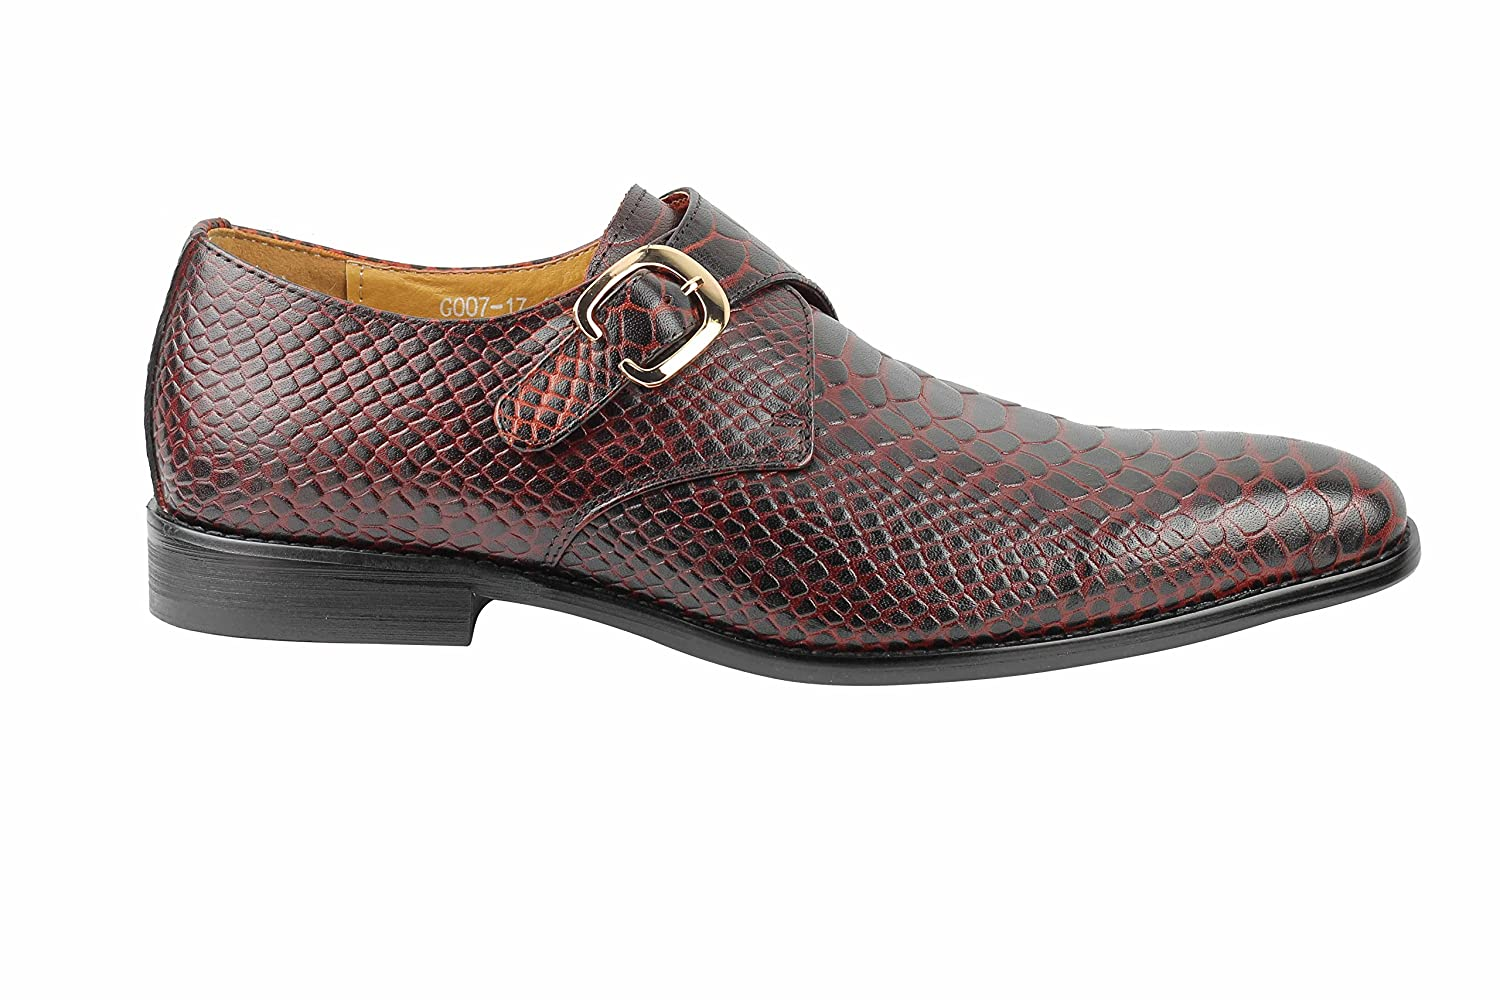 3e40a7869b3 Xposed Mens Real Leather Crocodile Skin Effect Red Blue Monk Shoes Slip on  Smart Loafer